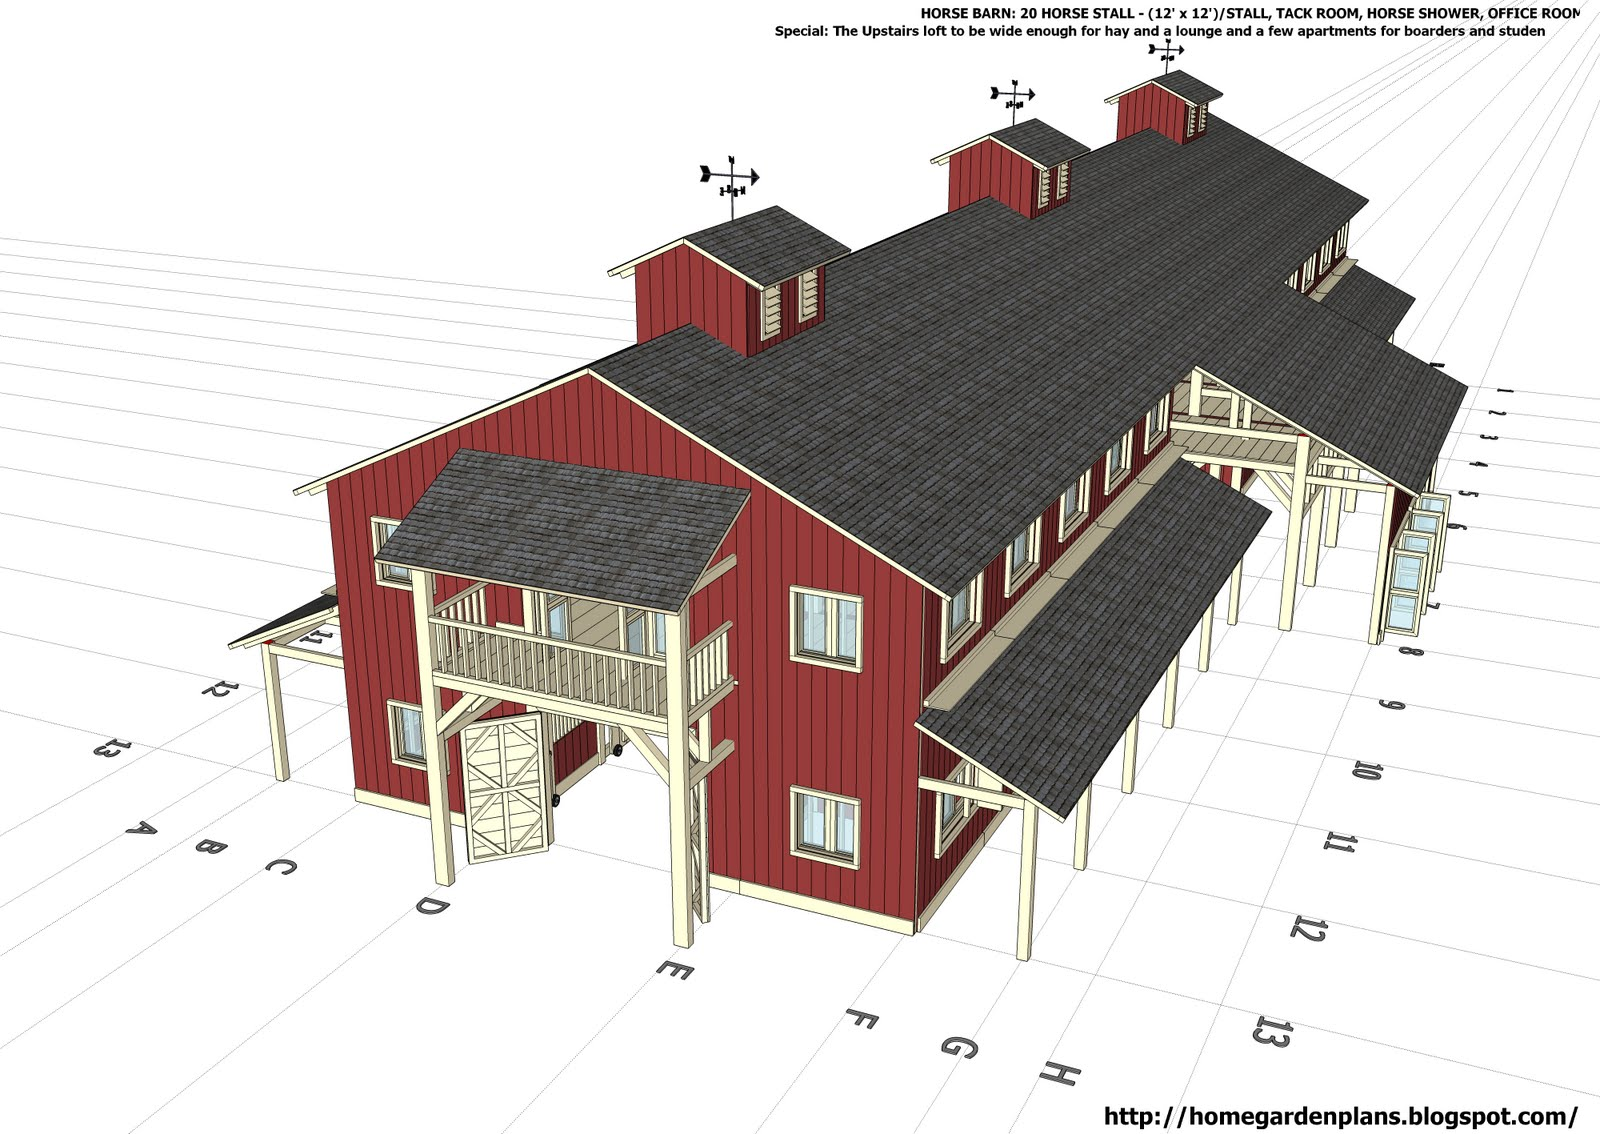 Nosecret more 12 x 10 storage shed plans free for 10 stall horse barn floor plans